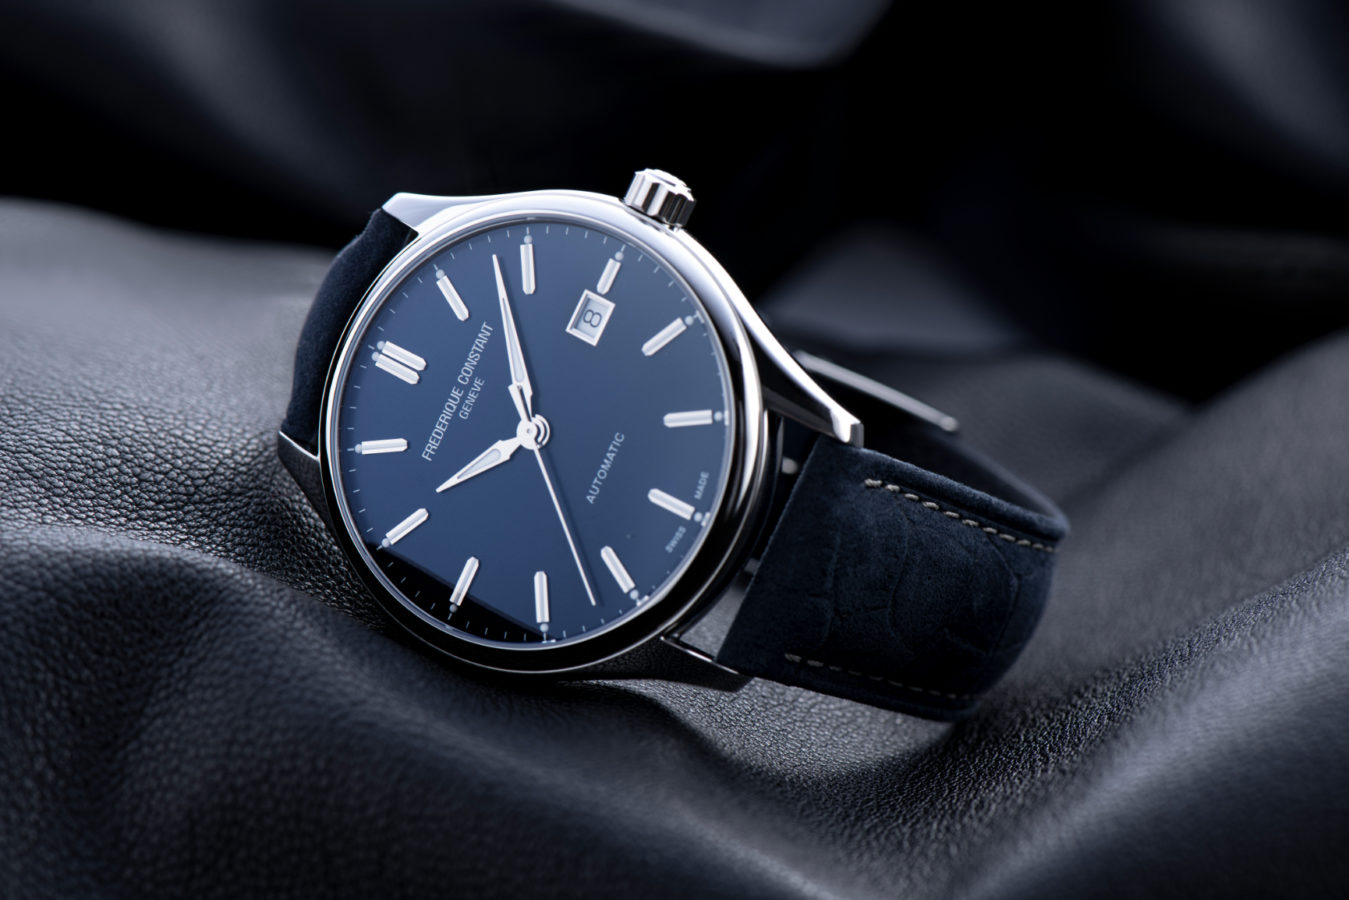 Review: The fuss-free elegance of Frederique Constant's new Classics Index Automatic